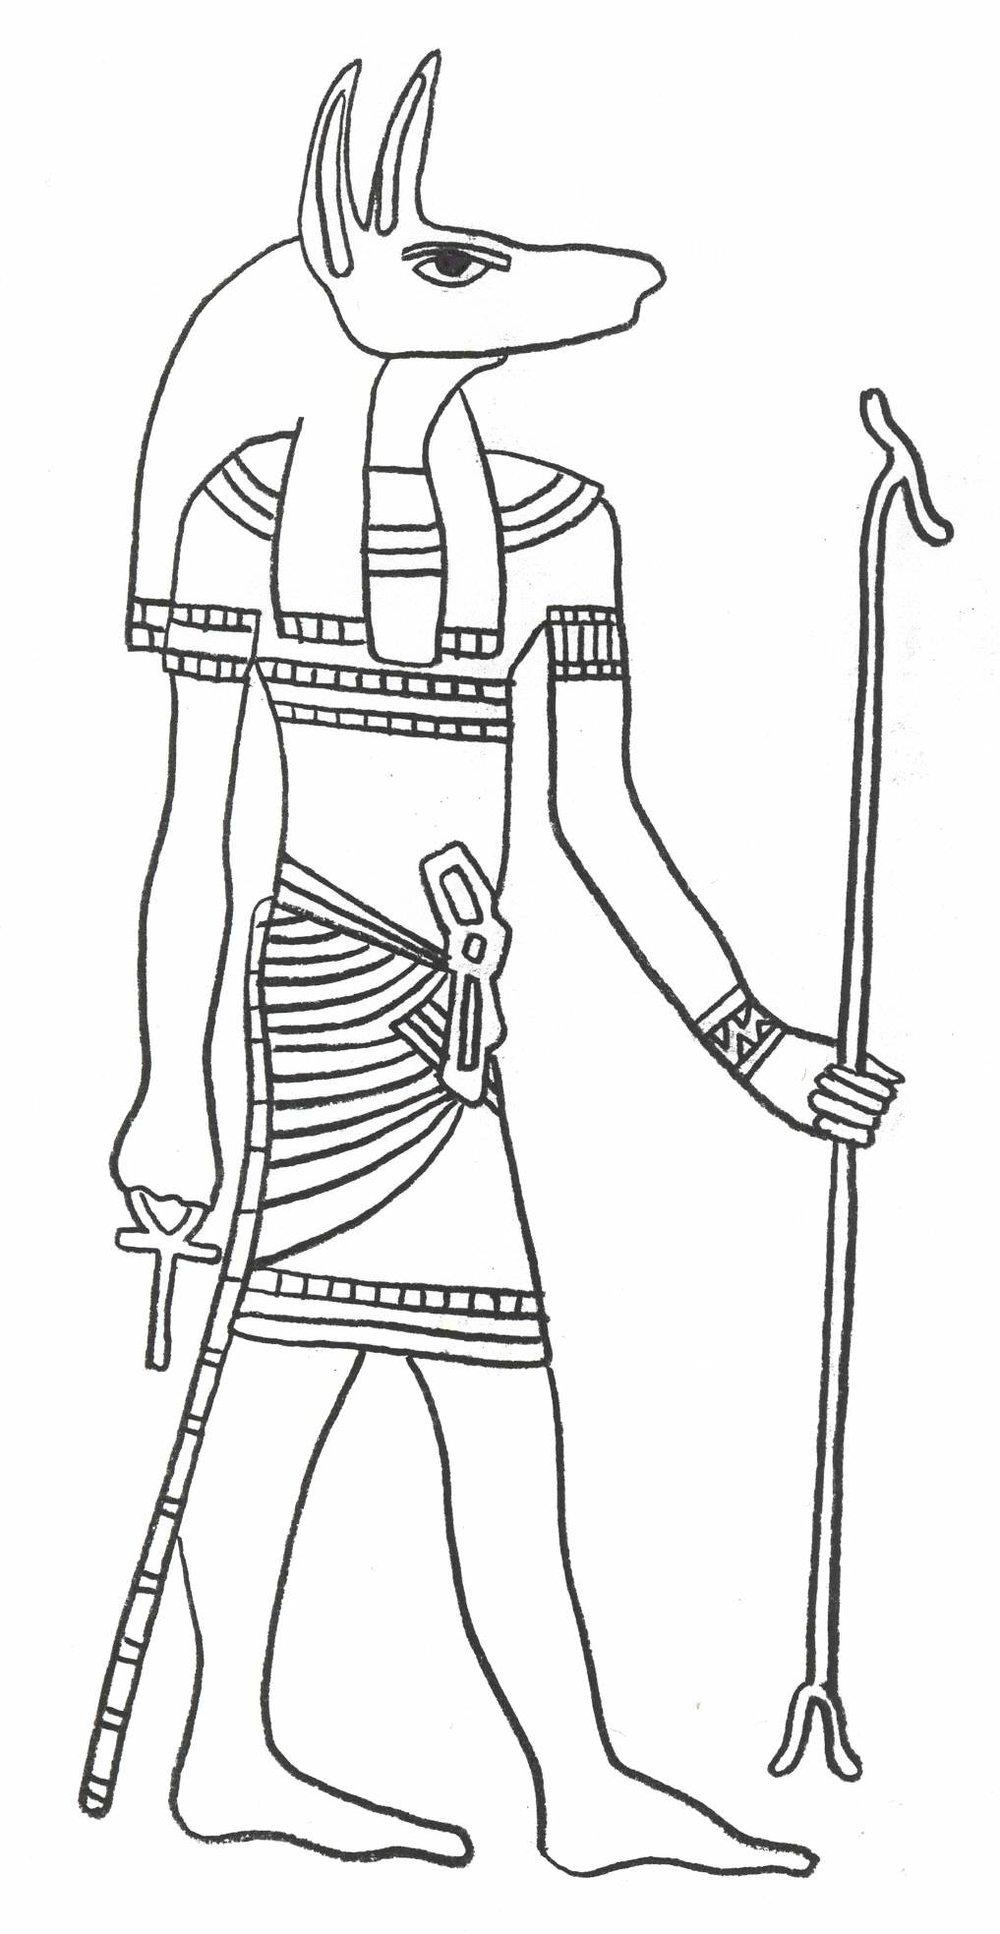 Ancient-Egypt-Coloring-Pages-For-Kids.jpg